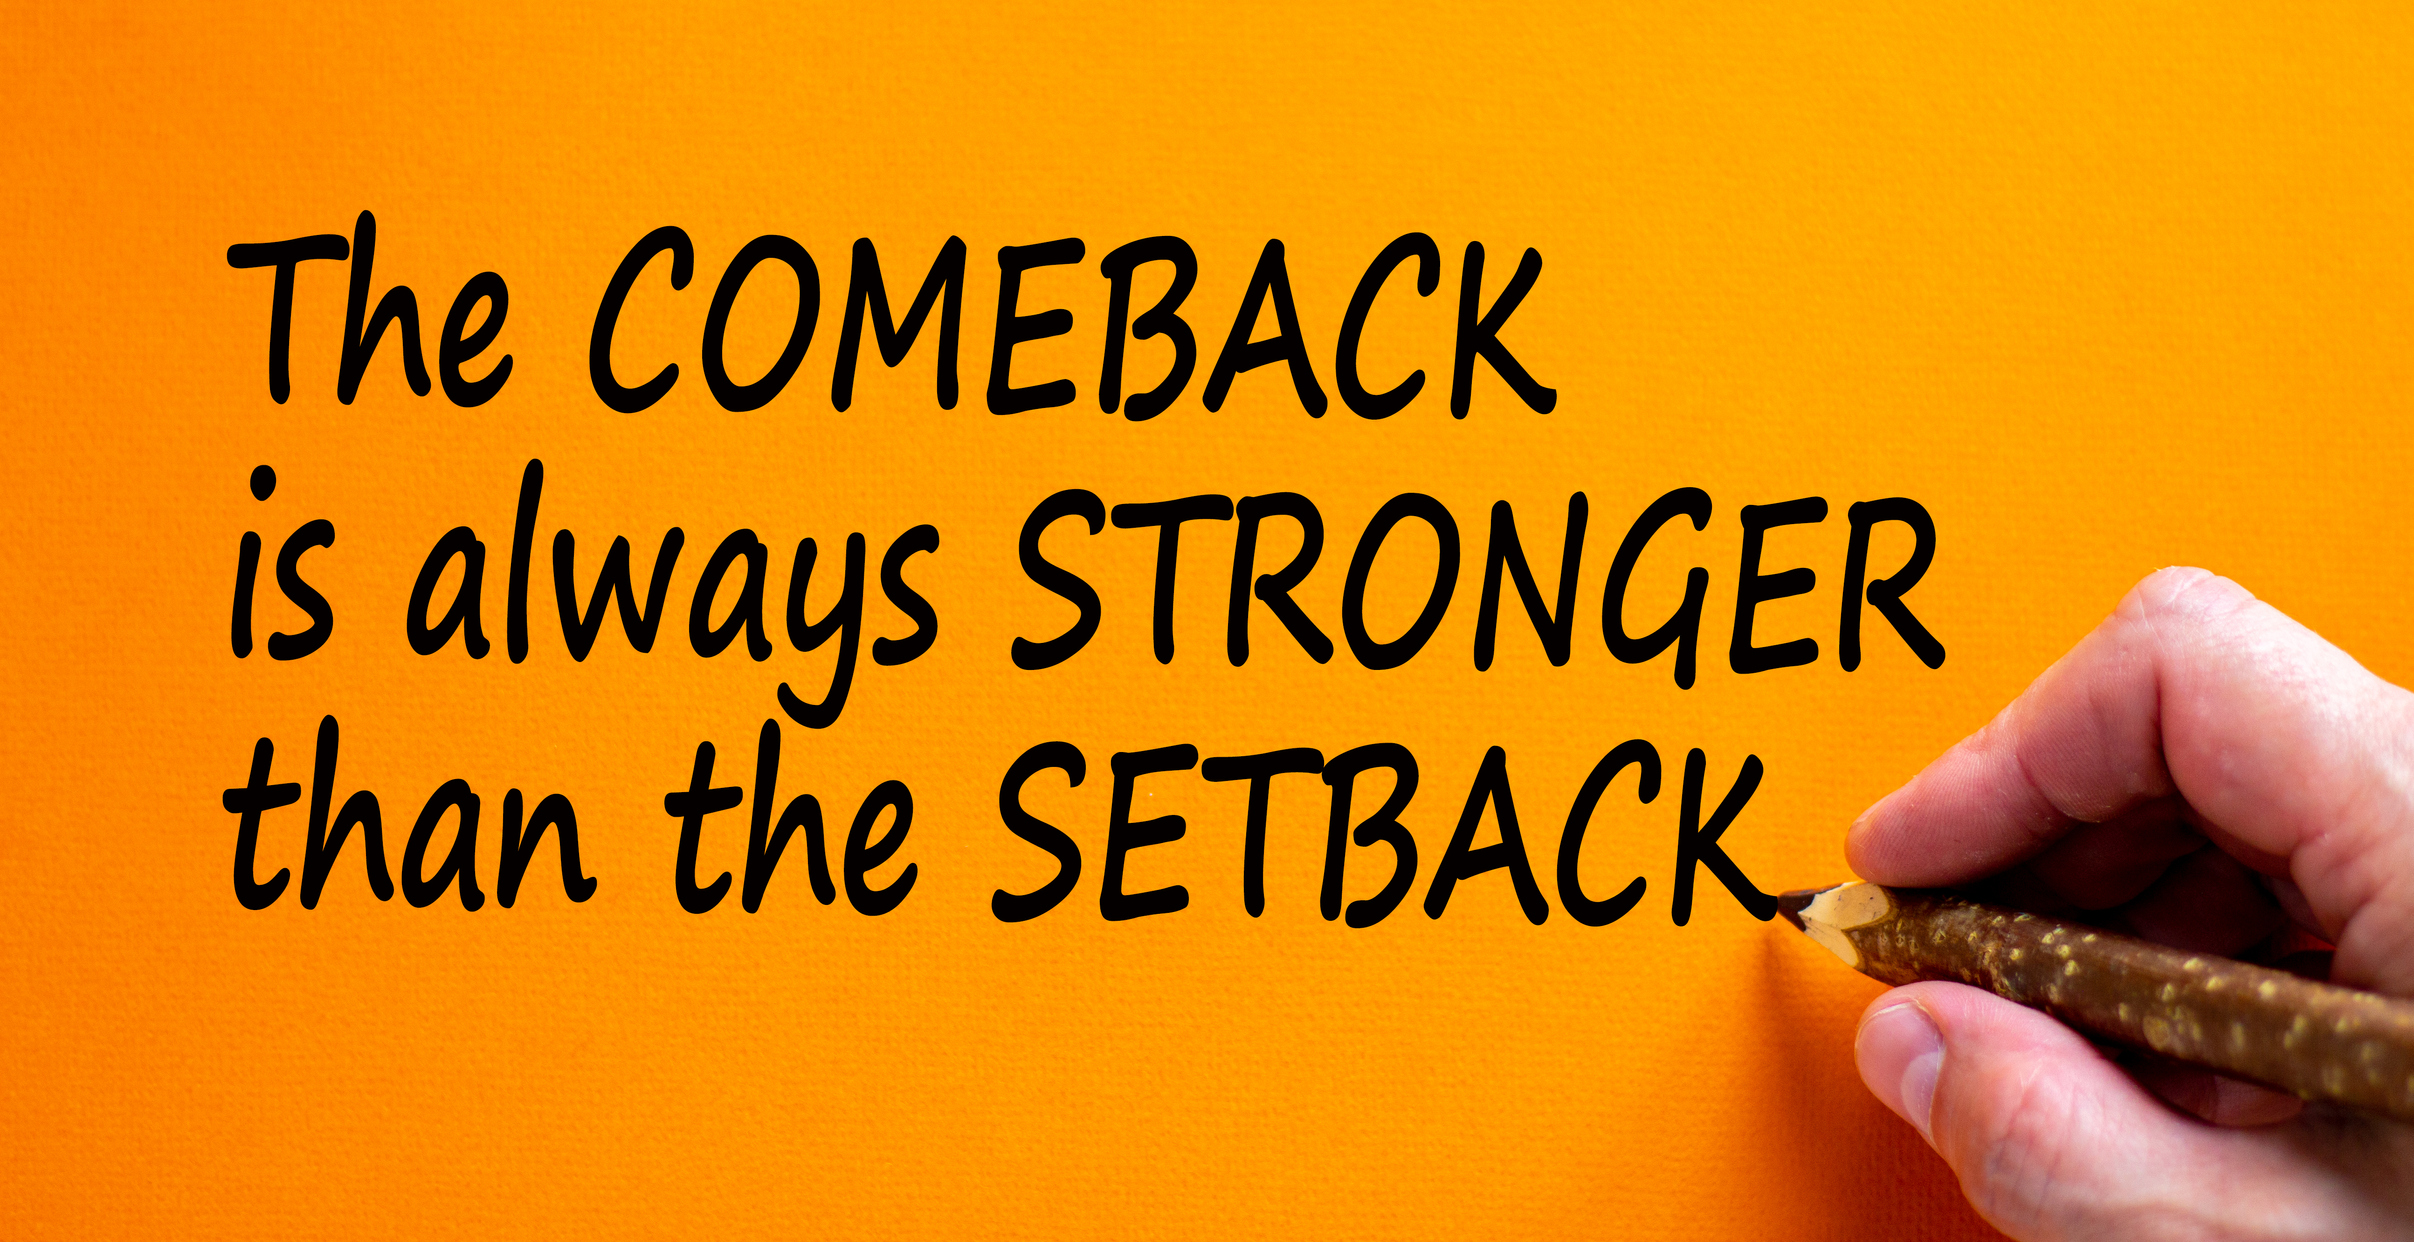 Comeback or setback symbol. Hand writing 'The comeback is always stronger than the setback', isolated on orange background. Business and comeback or setback concept, copy space.